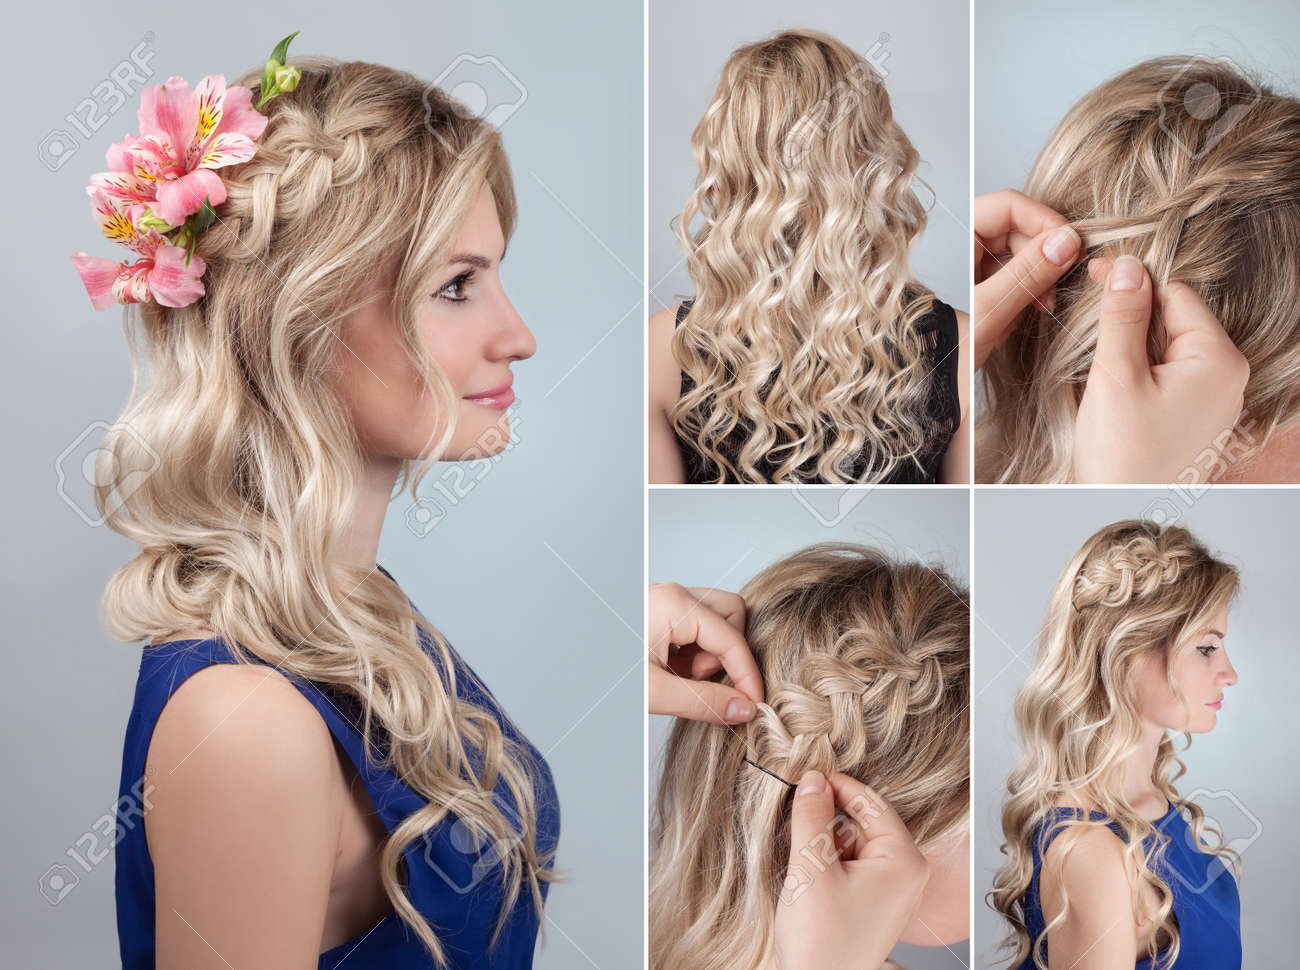 Simple Braid Hairstyle With Curly Hair Tutorial Romantic Evening